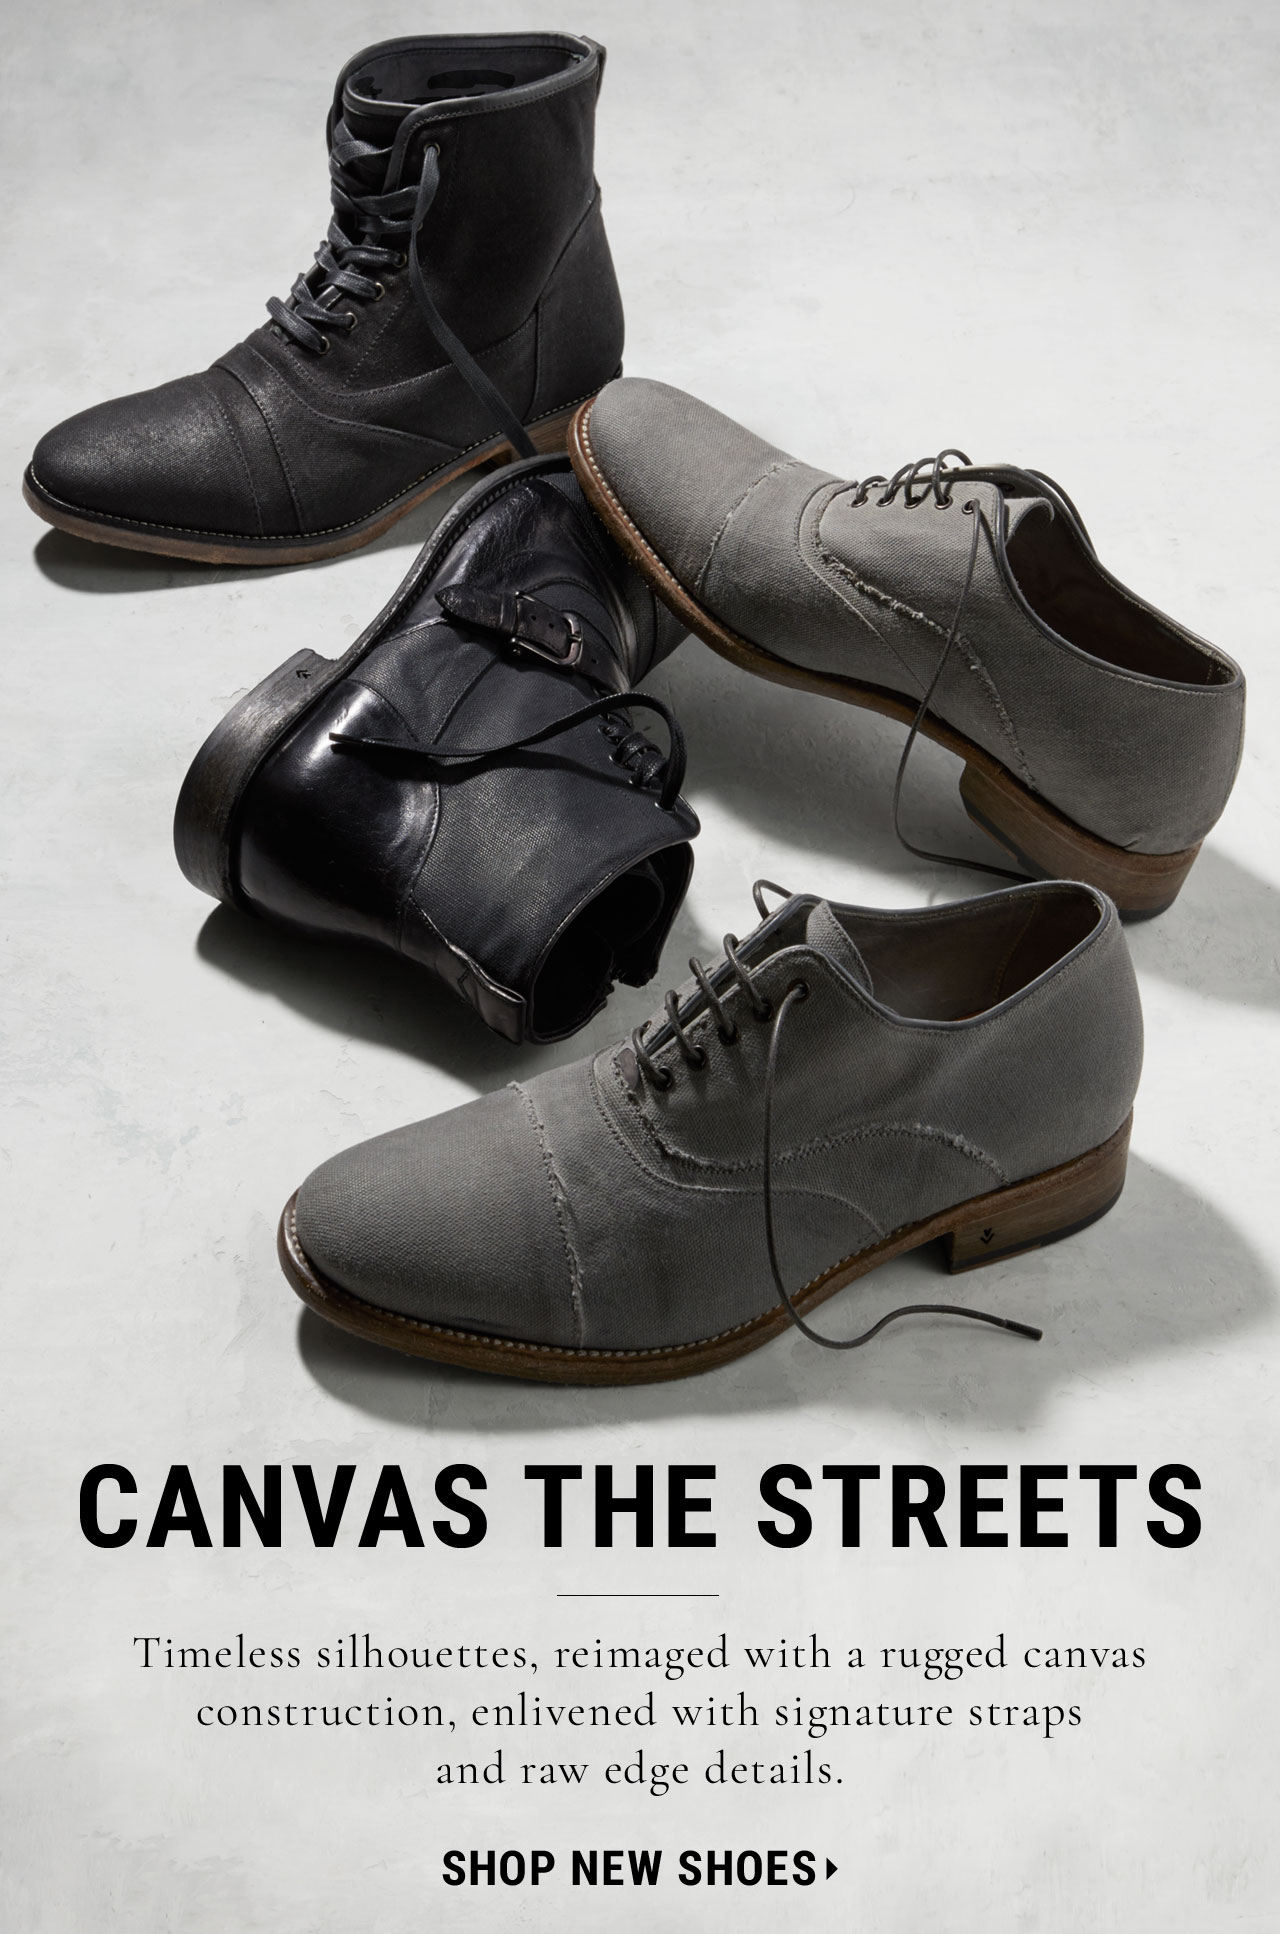 Canvas The Streets. Timeless silhouettes, reimaged with rugged canvas construction, enlivened with signature straps and raw edge details.SHOP NEW SHOES.